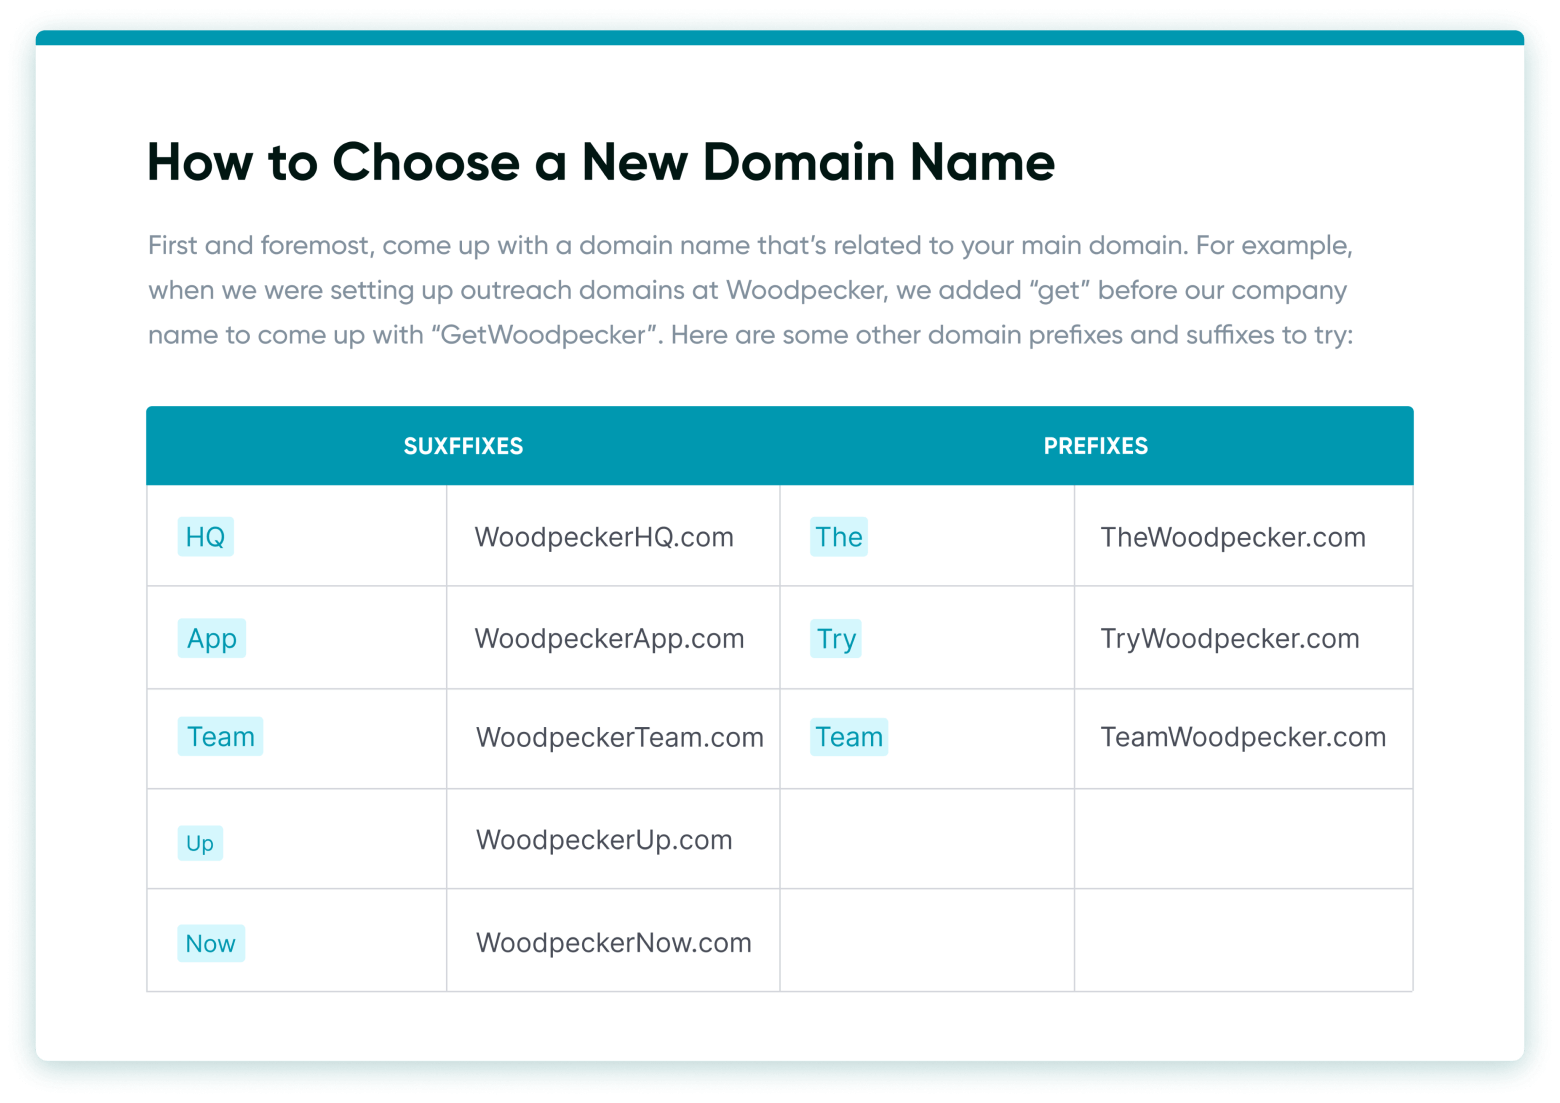 Brainstorm a new domain name